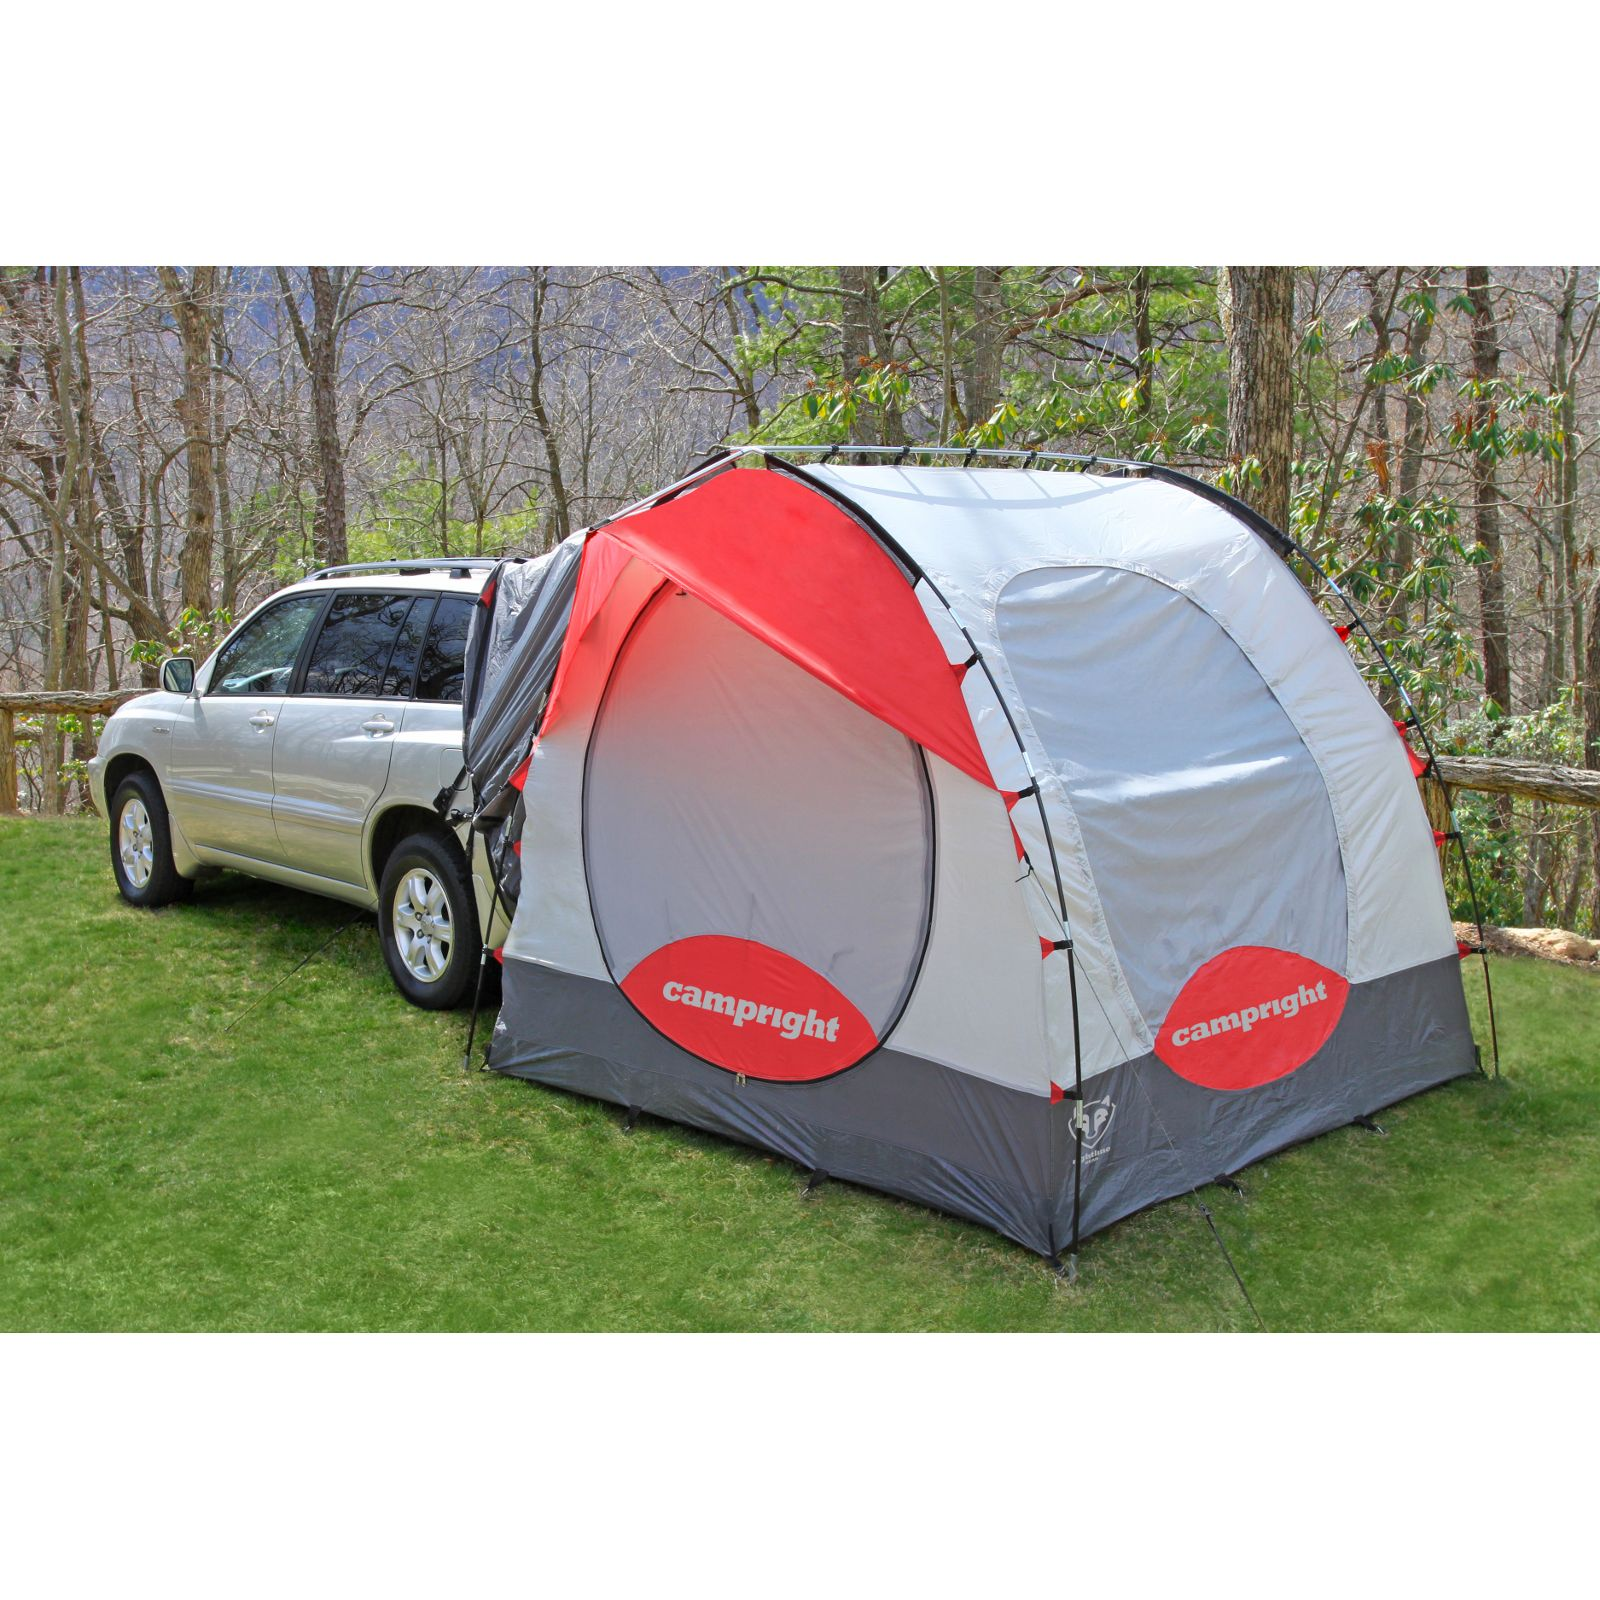 Rightline Gear Campright 110905 Suv Camping Tent